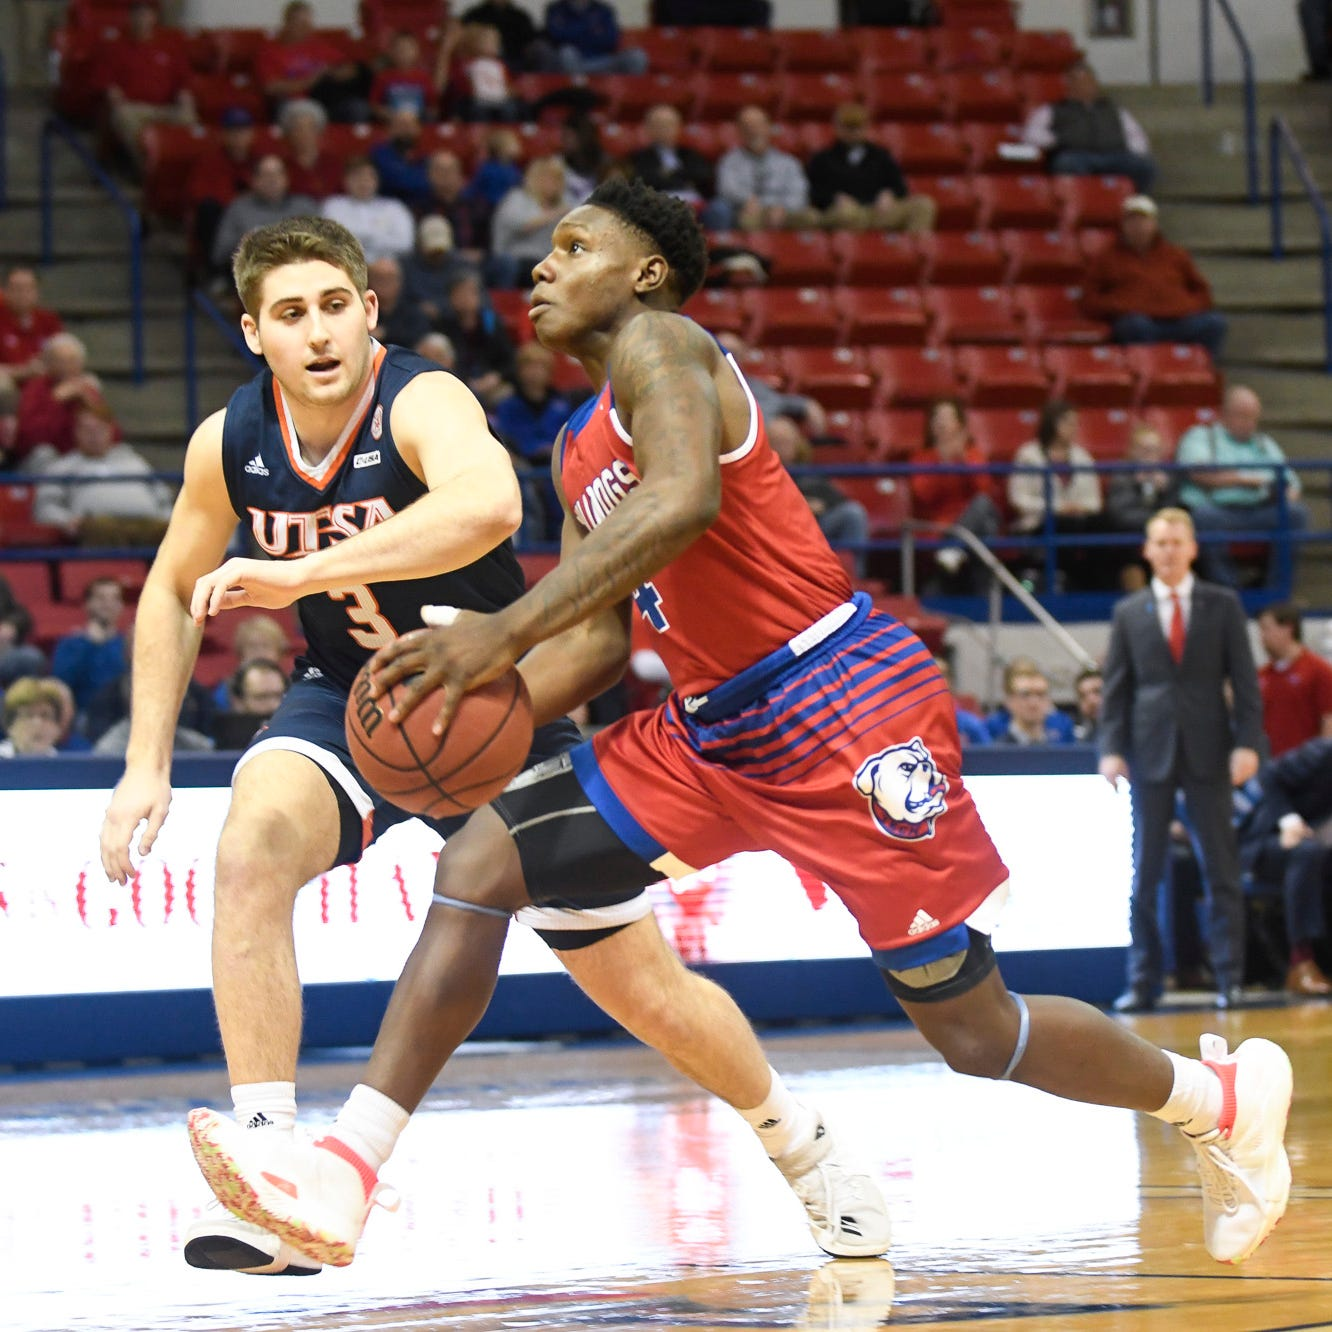 Despite beating UTSA, LA Tech falls in C-USA standings ahead of bonus play